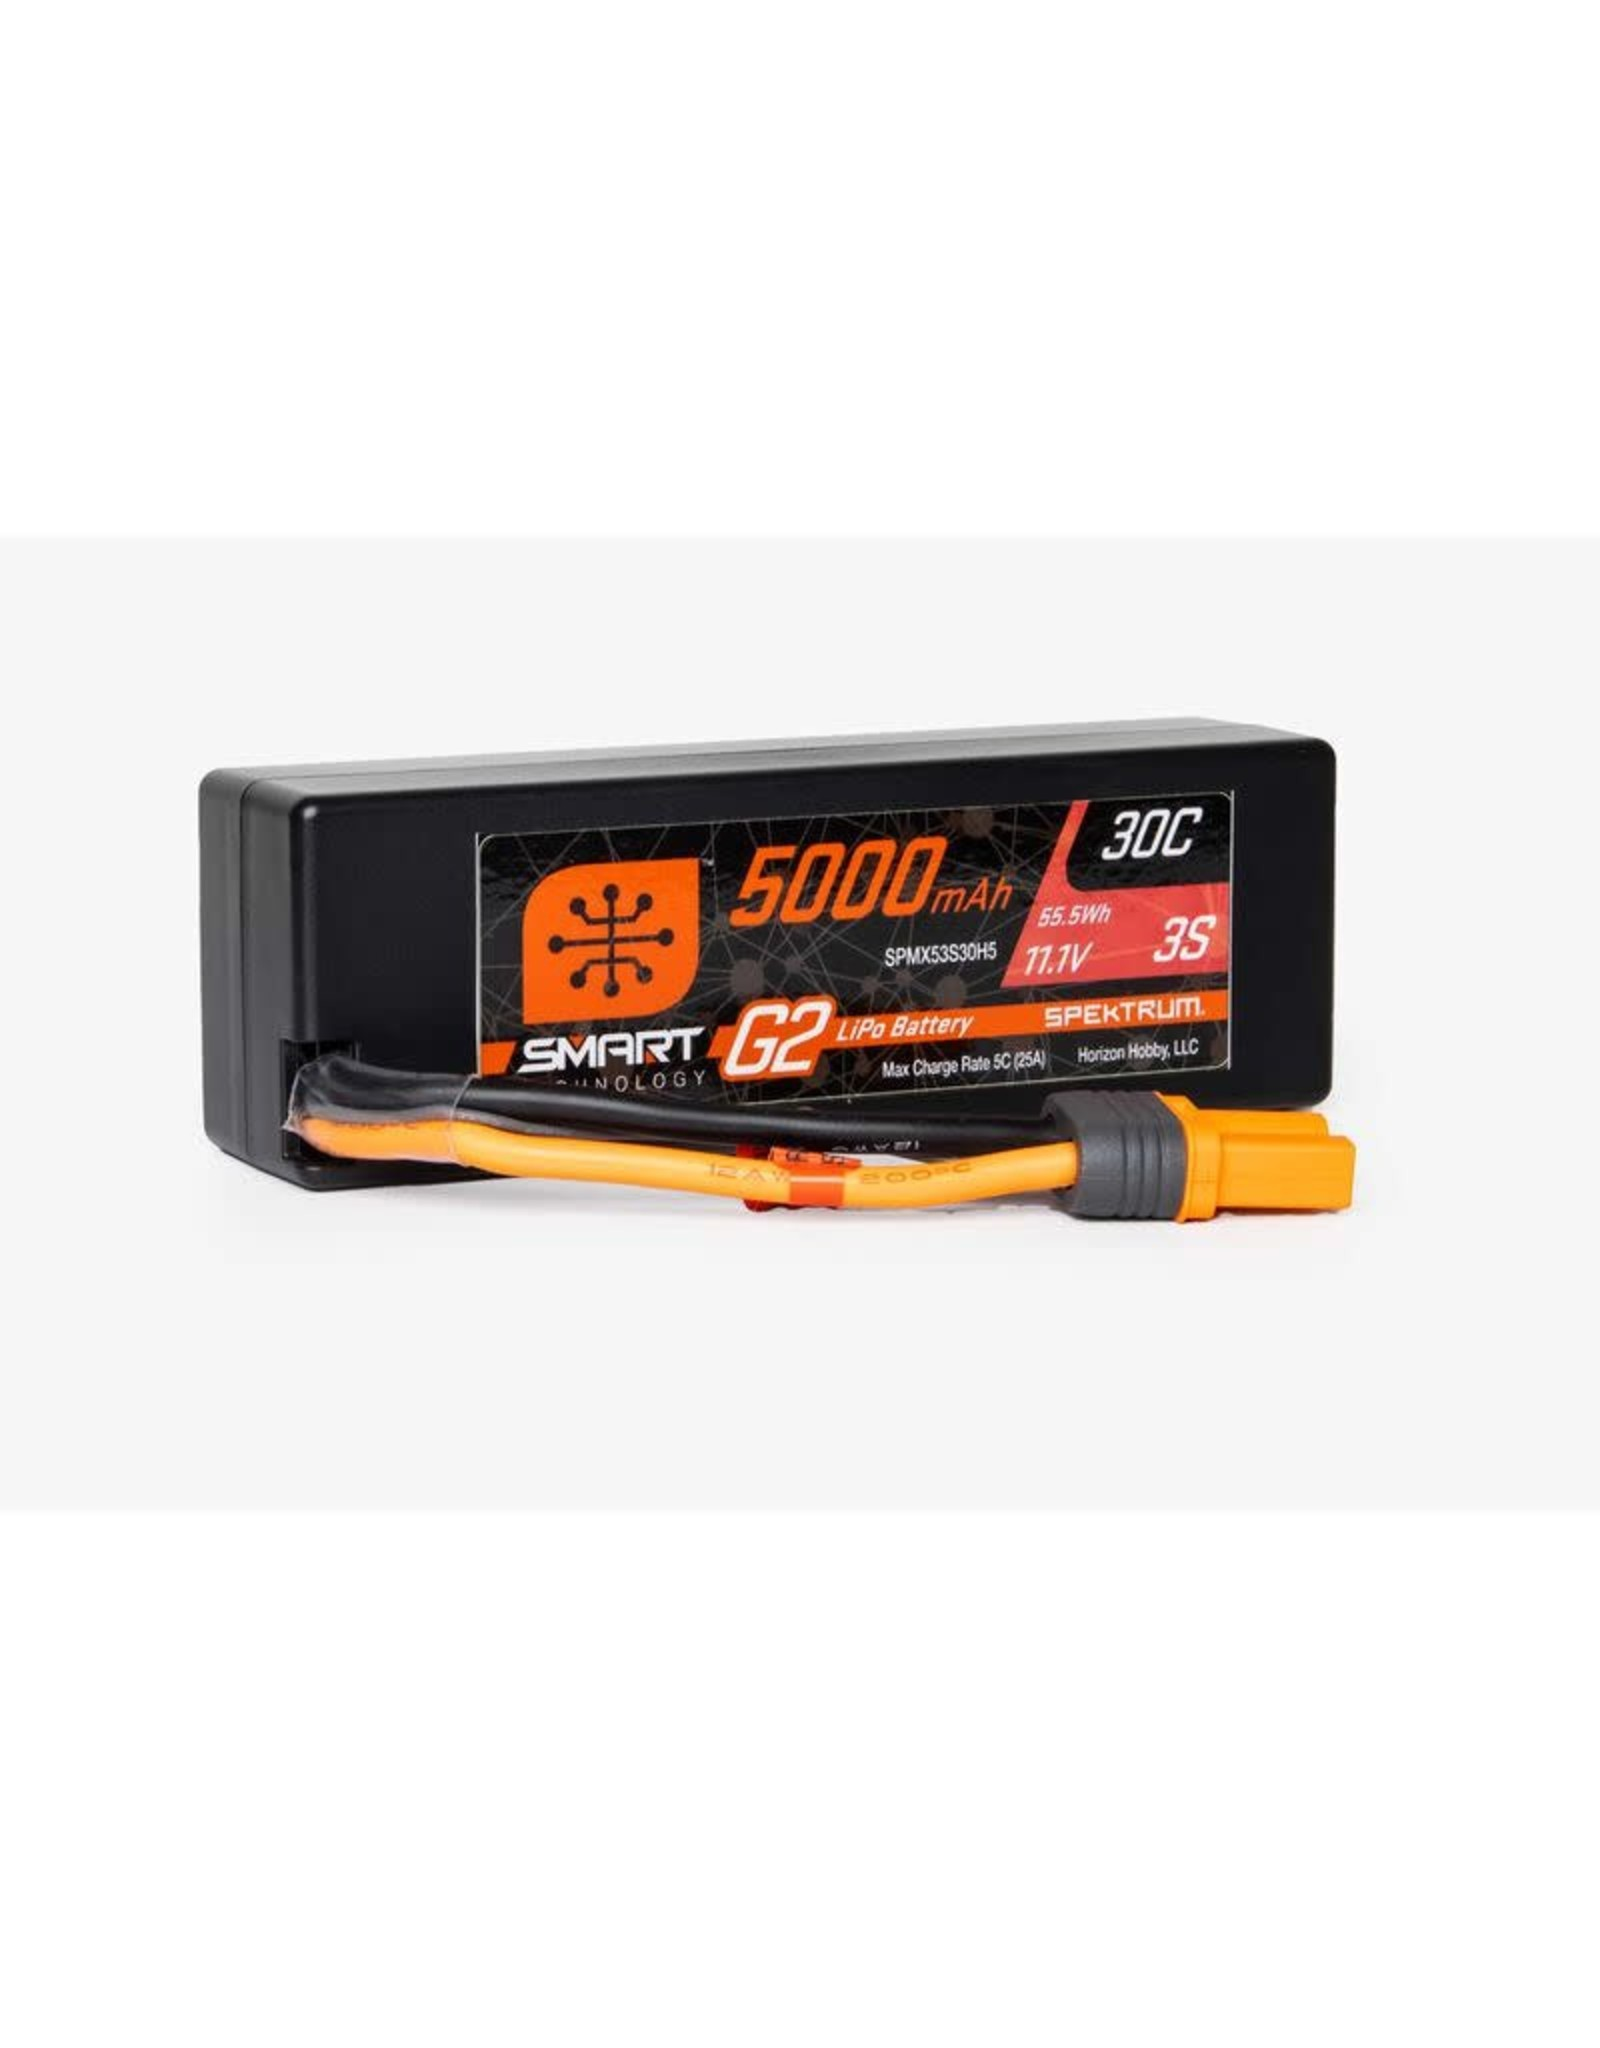 'Spektrum 11.1V 5000mAh 3S 30C Smart G2 Hardcase LiPo Battery: IC3